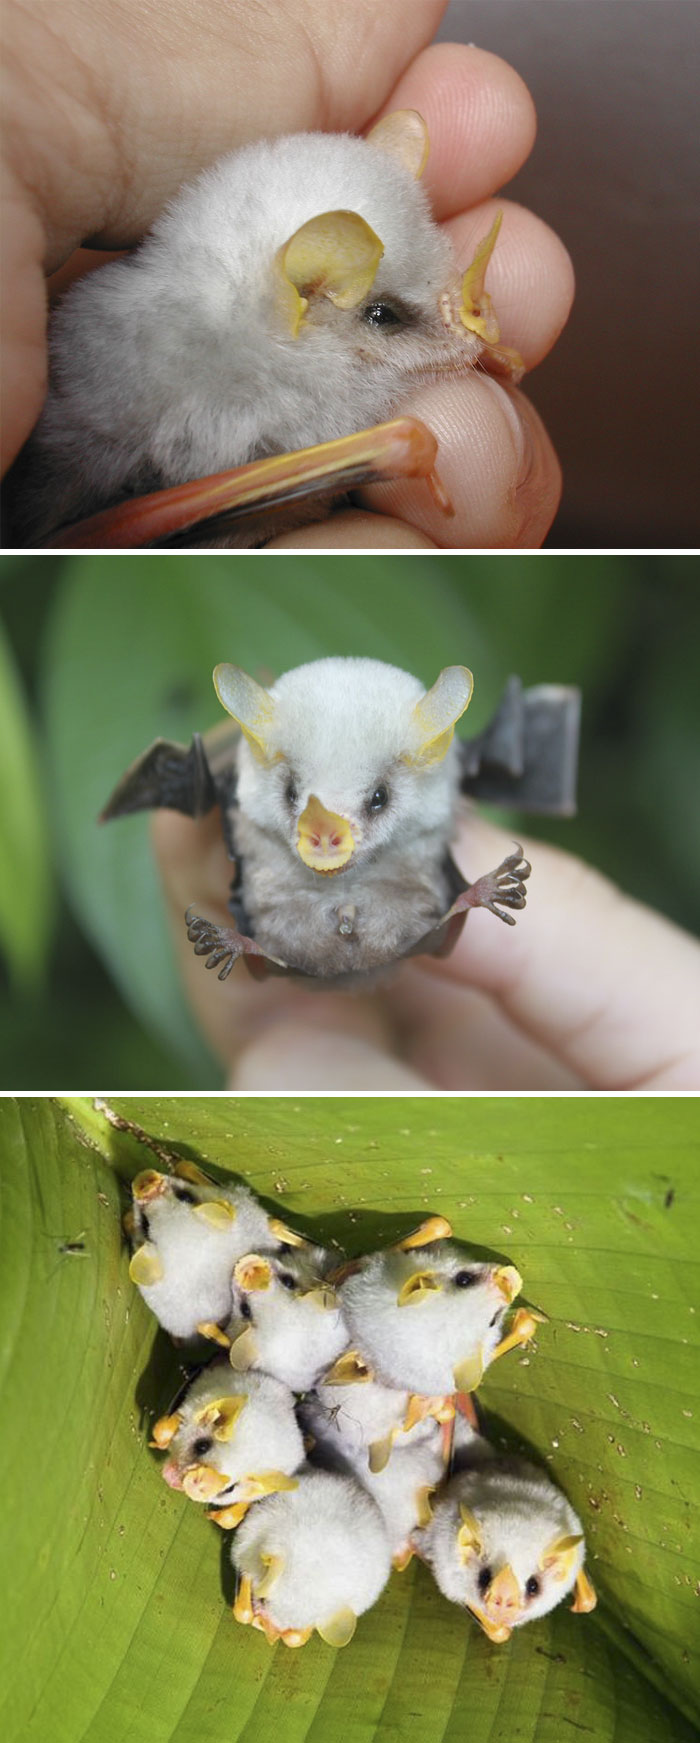 Rare Animal Babies You've Never Seen Before - 8. Fluffy Honduran White Bat Baby